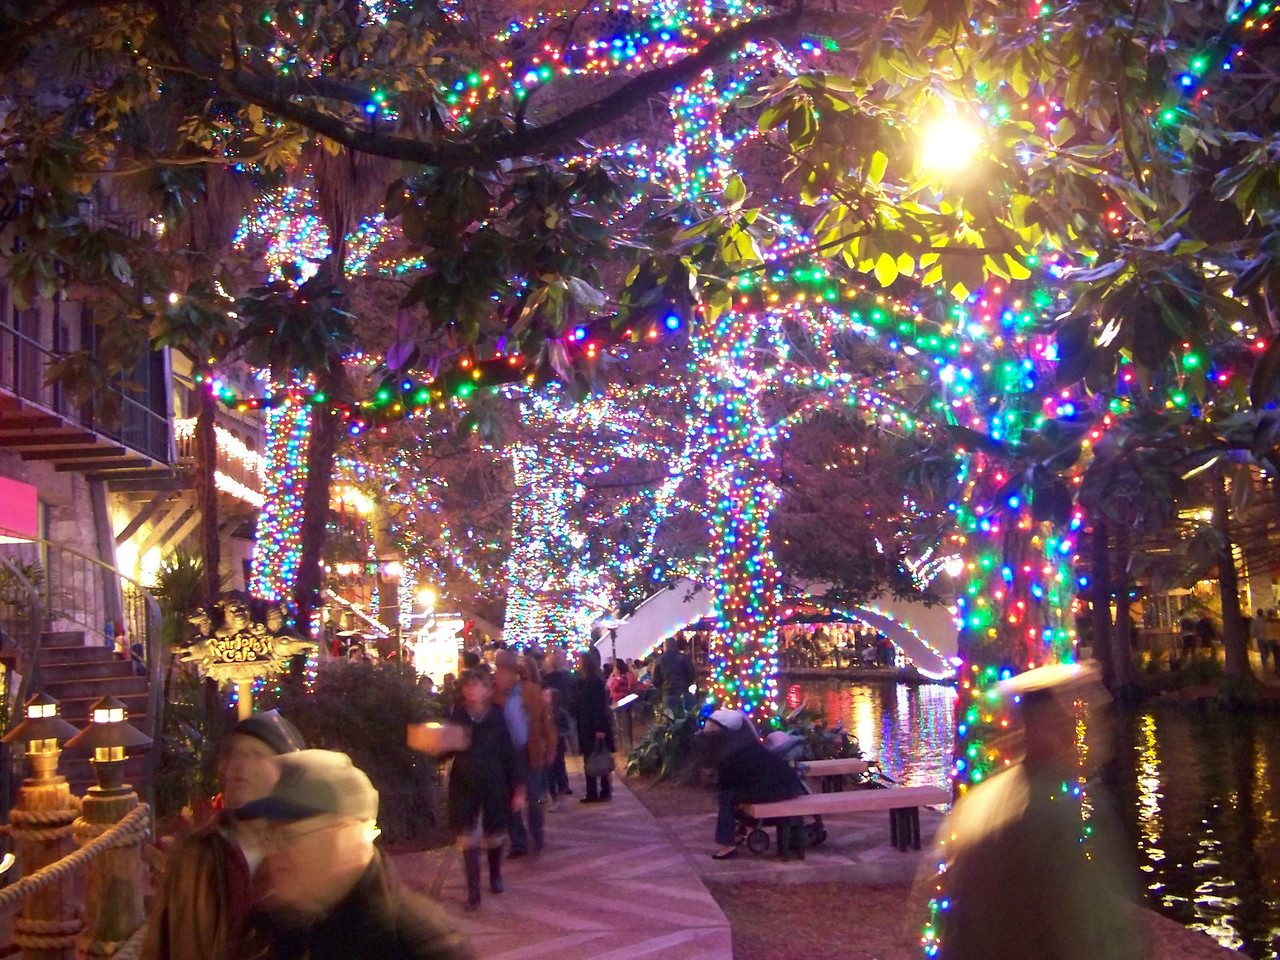 San Antonio River Walk Christmas lights.